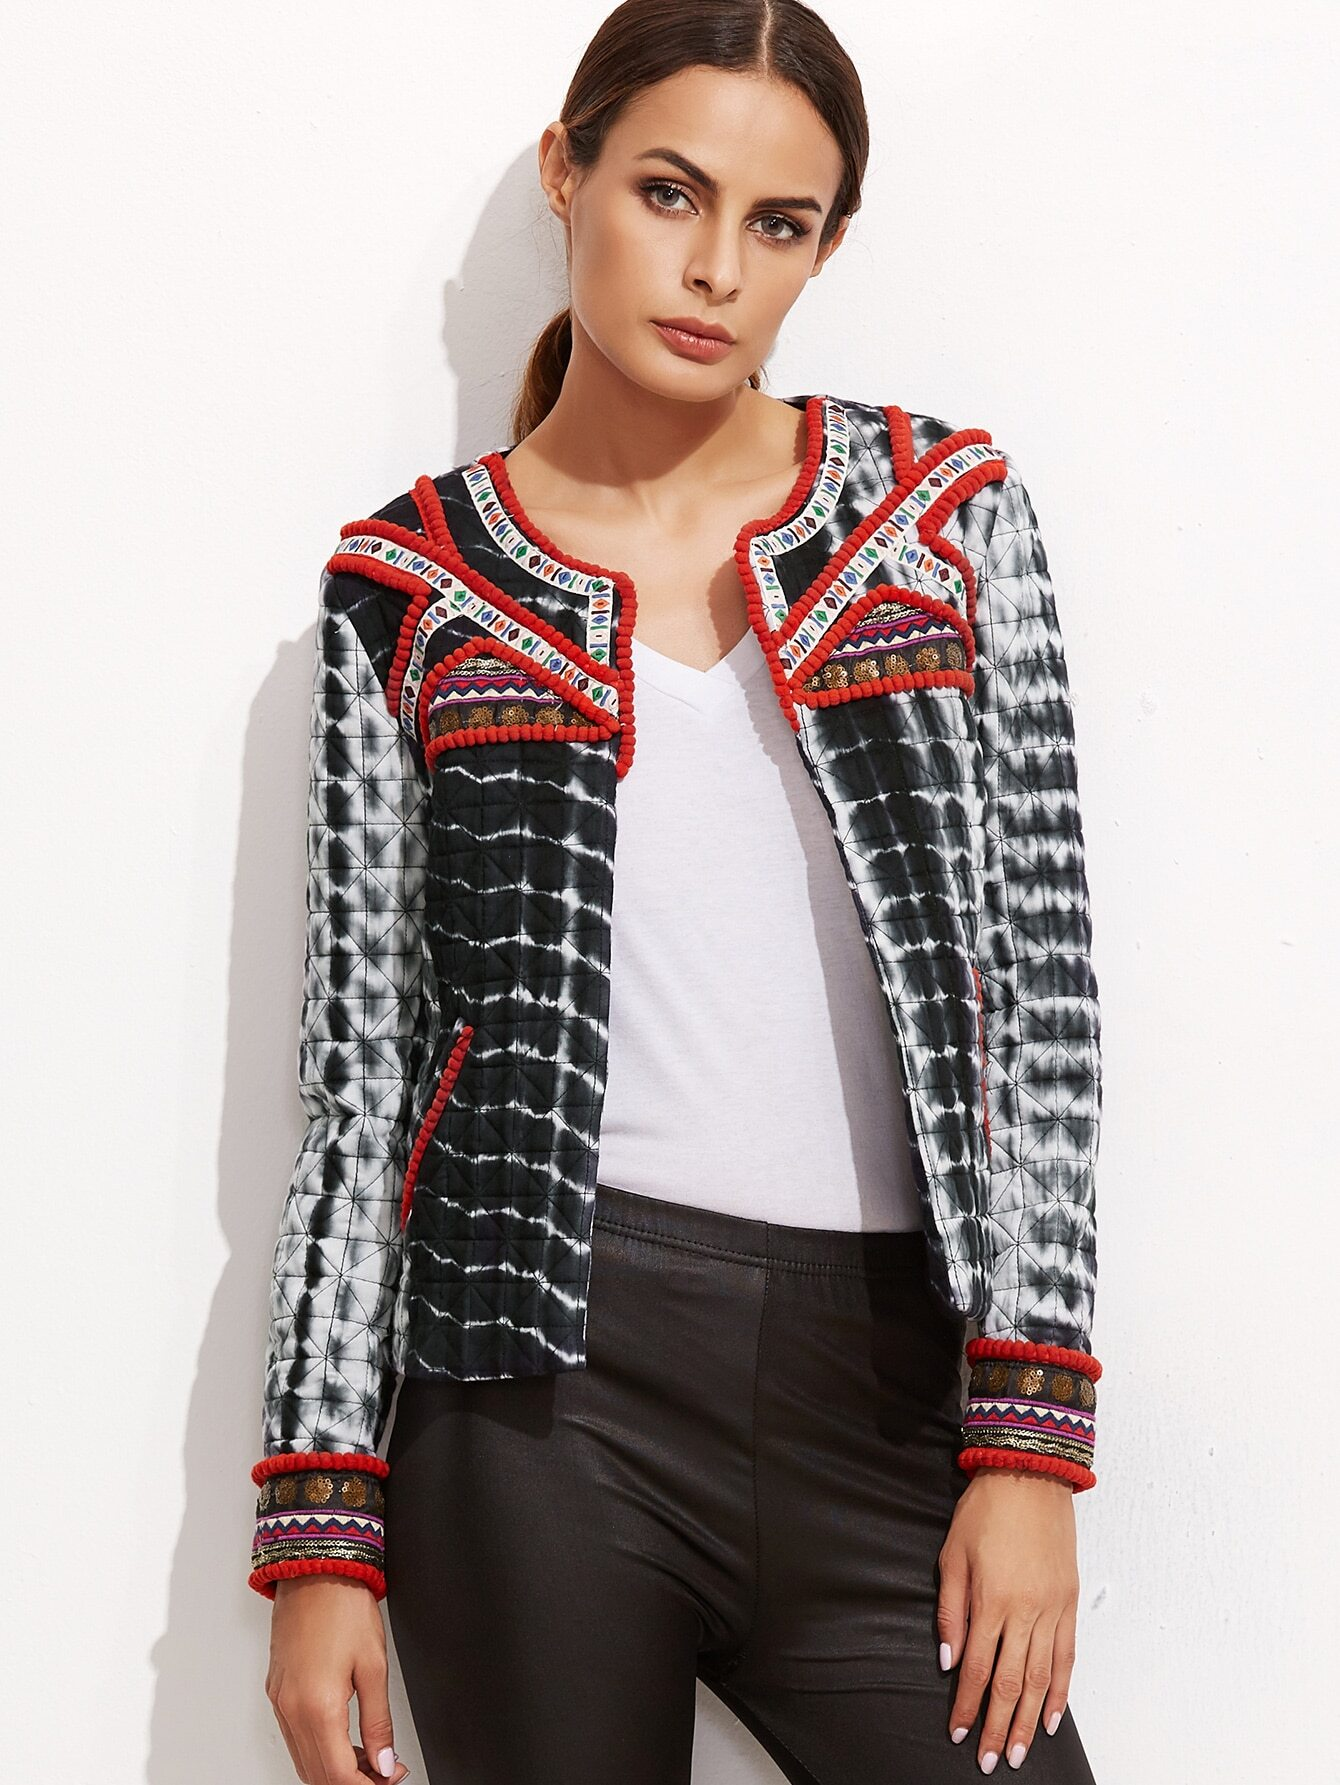 Black Tie Dye Print Quilted Jacket With Embroidered Tape Detail